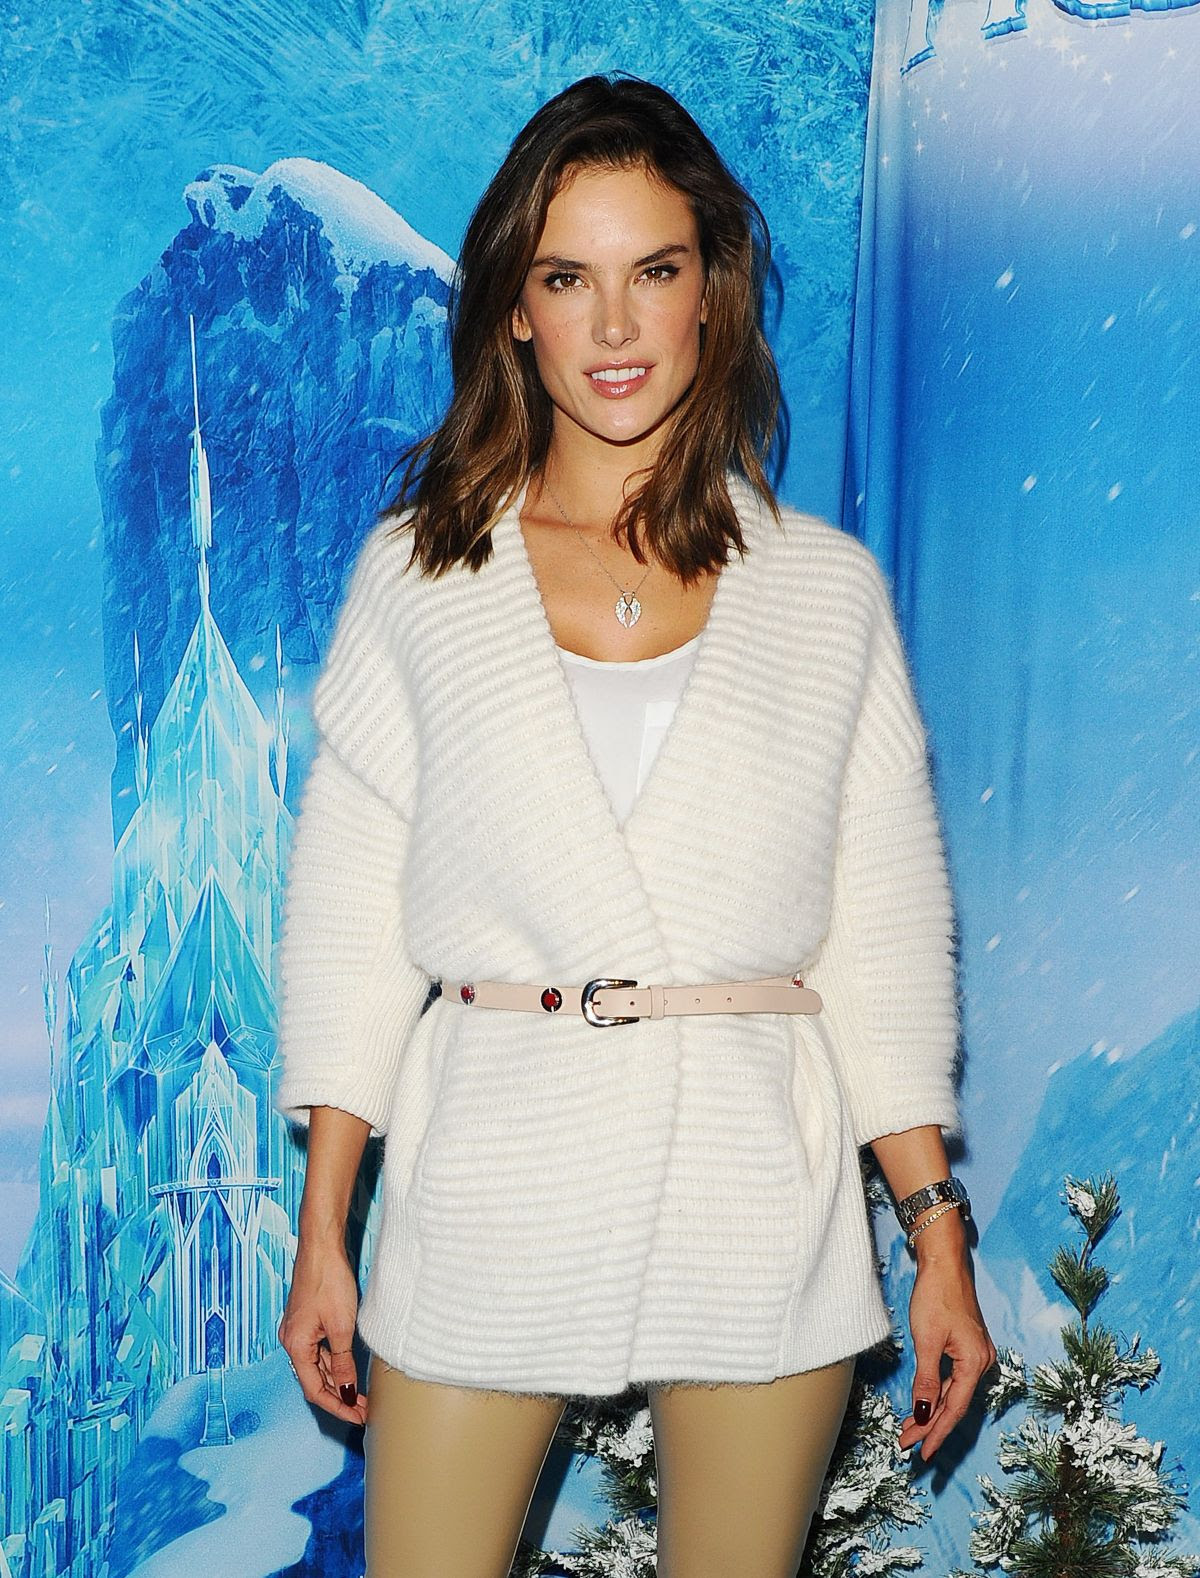 ALESSANDRA AMBROSIO at Disney on Ice in Los Angeles 12/10/2015